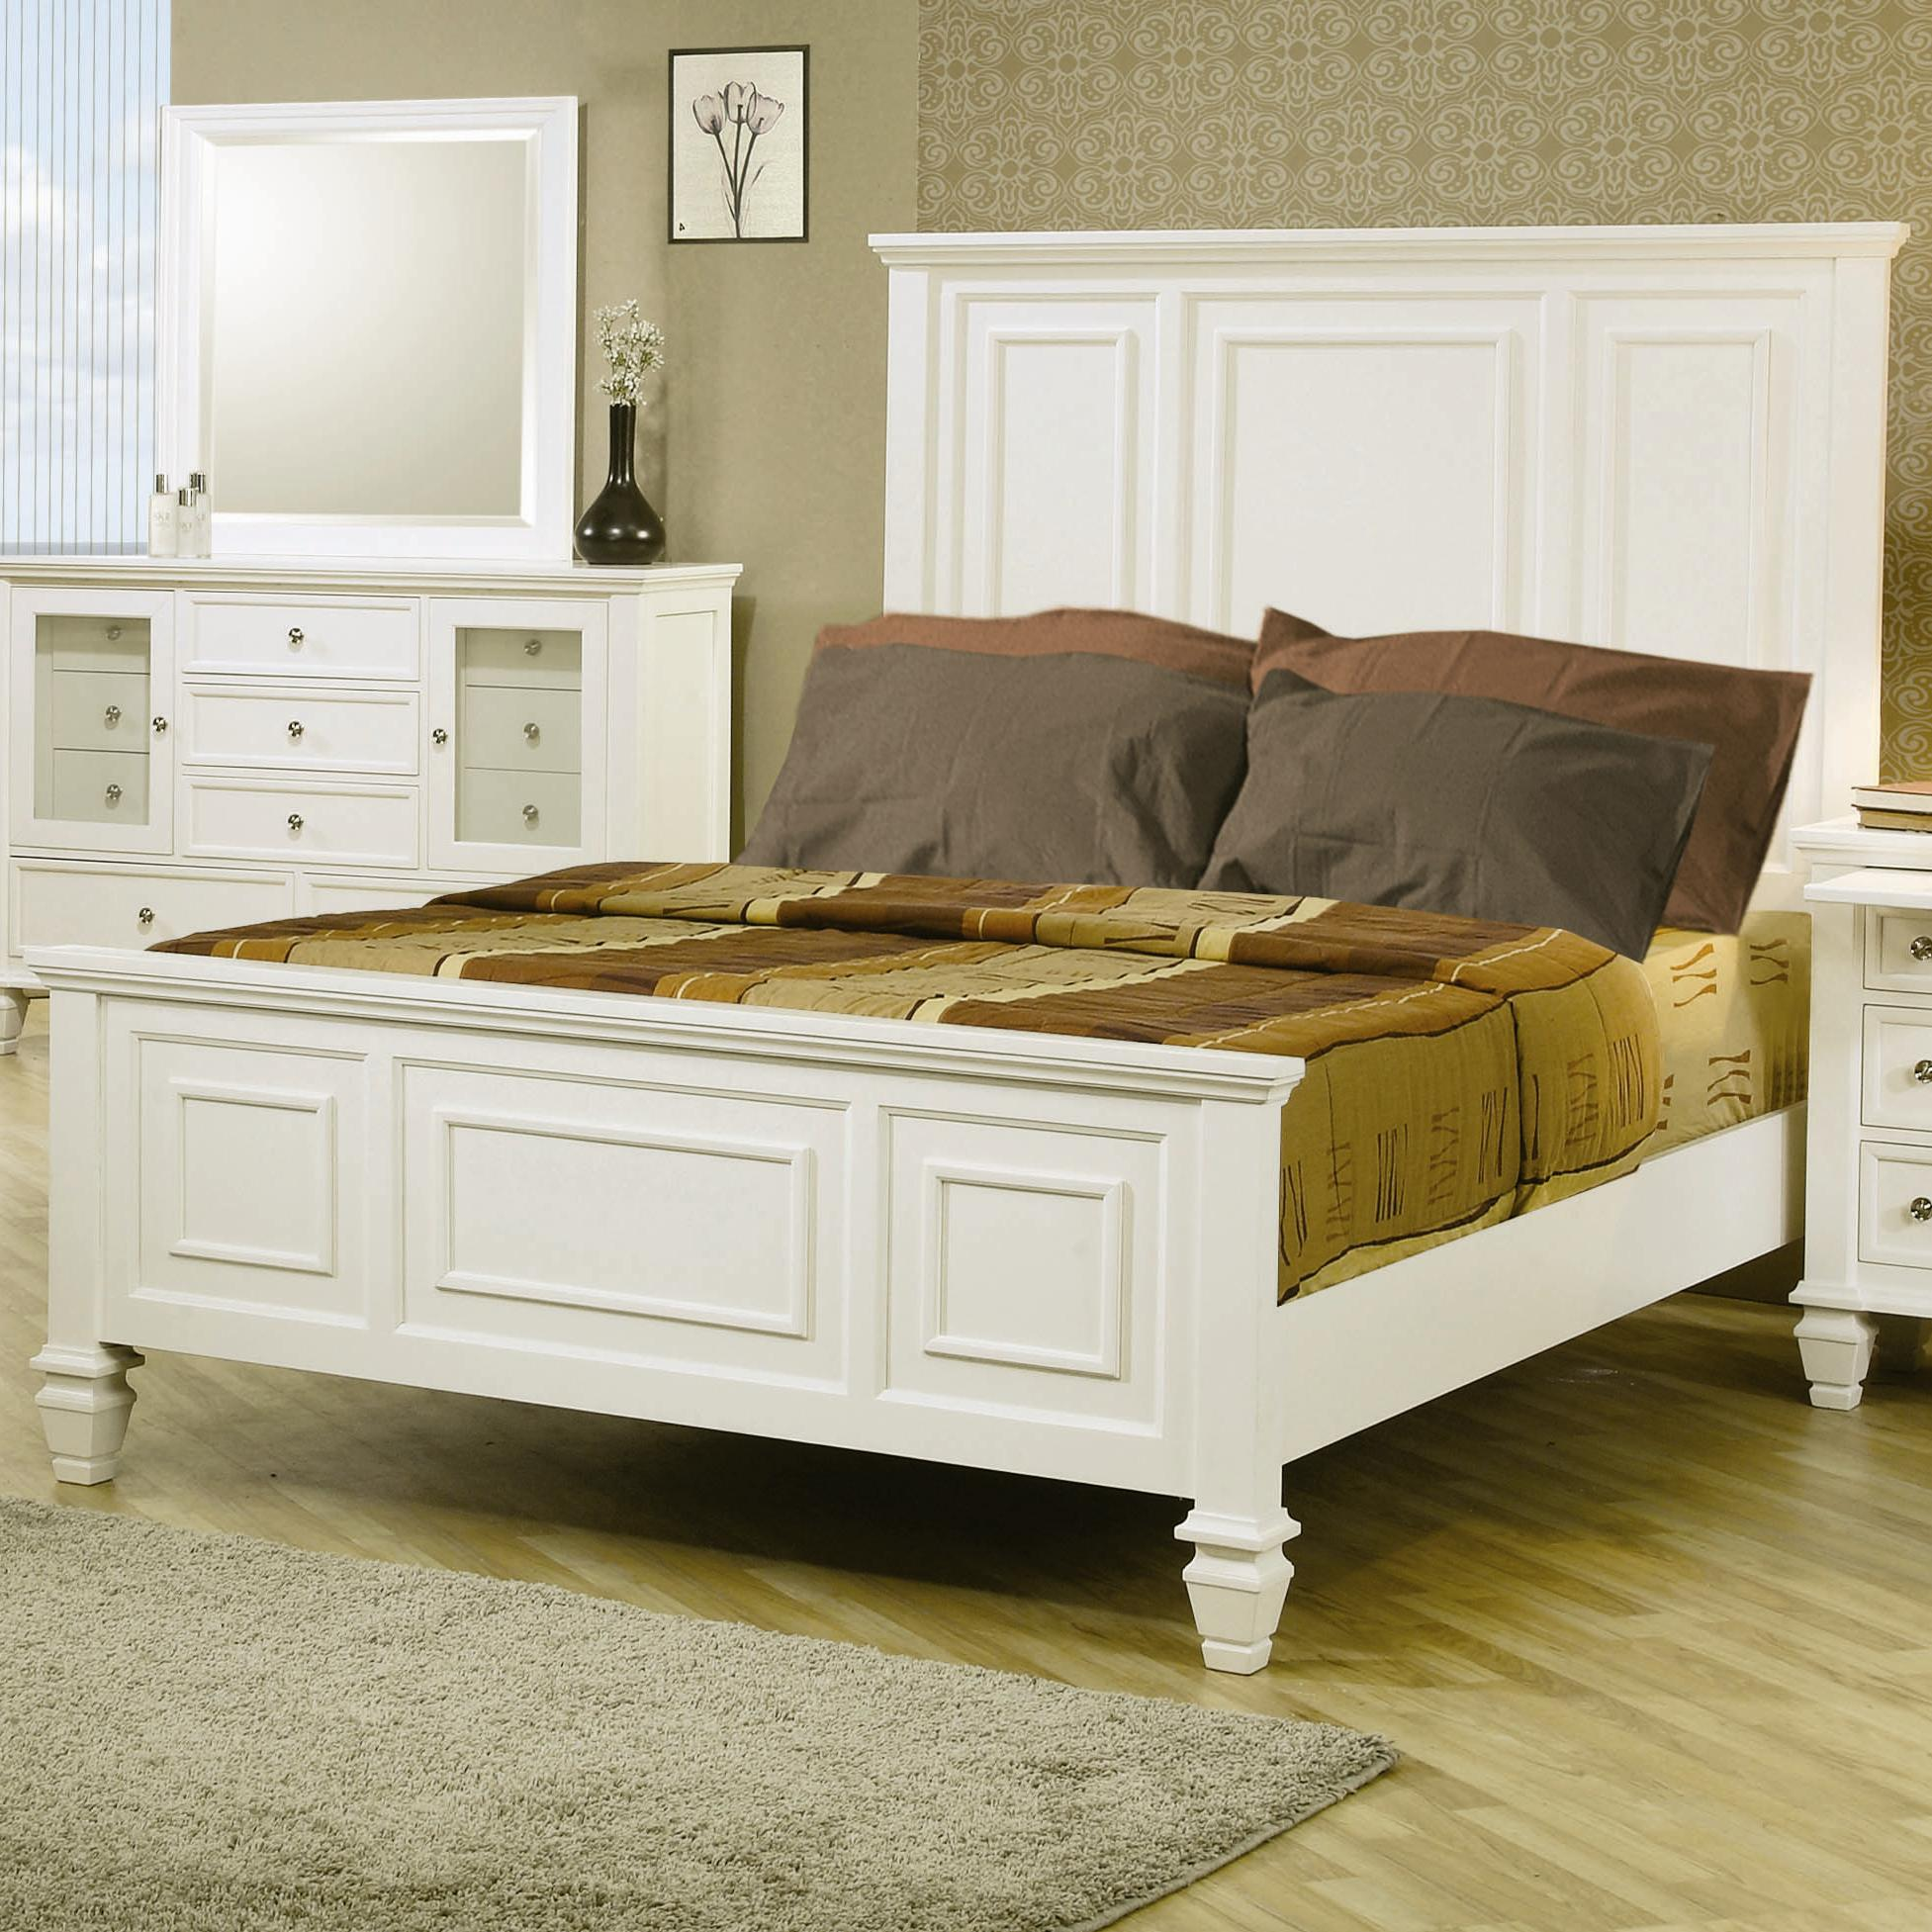 Sandy Beach Queen Headboard & Footboard Bed by Coaster at Rooms for Less